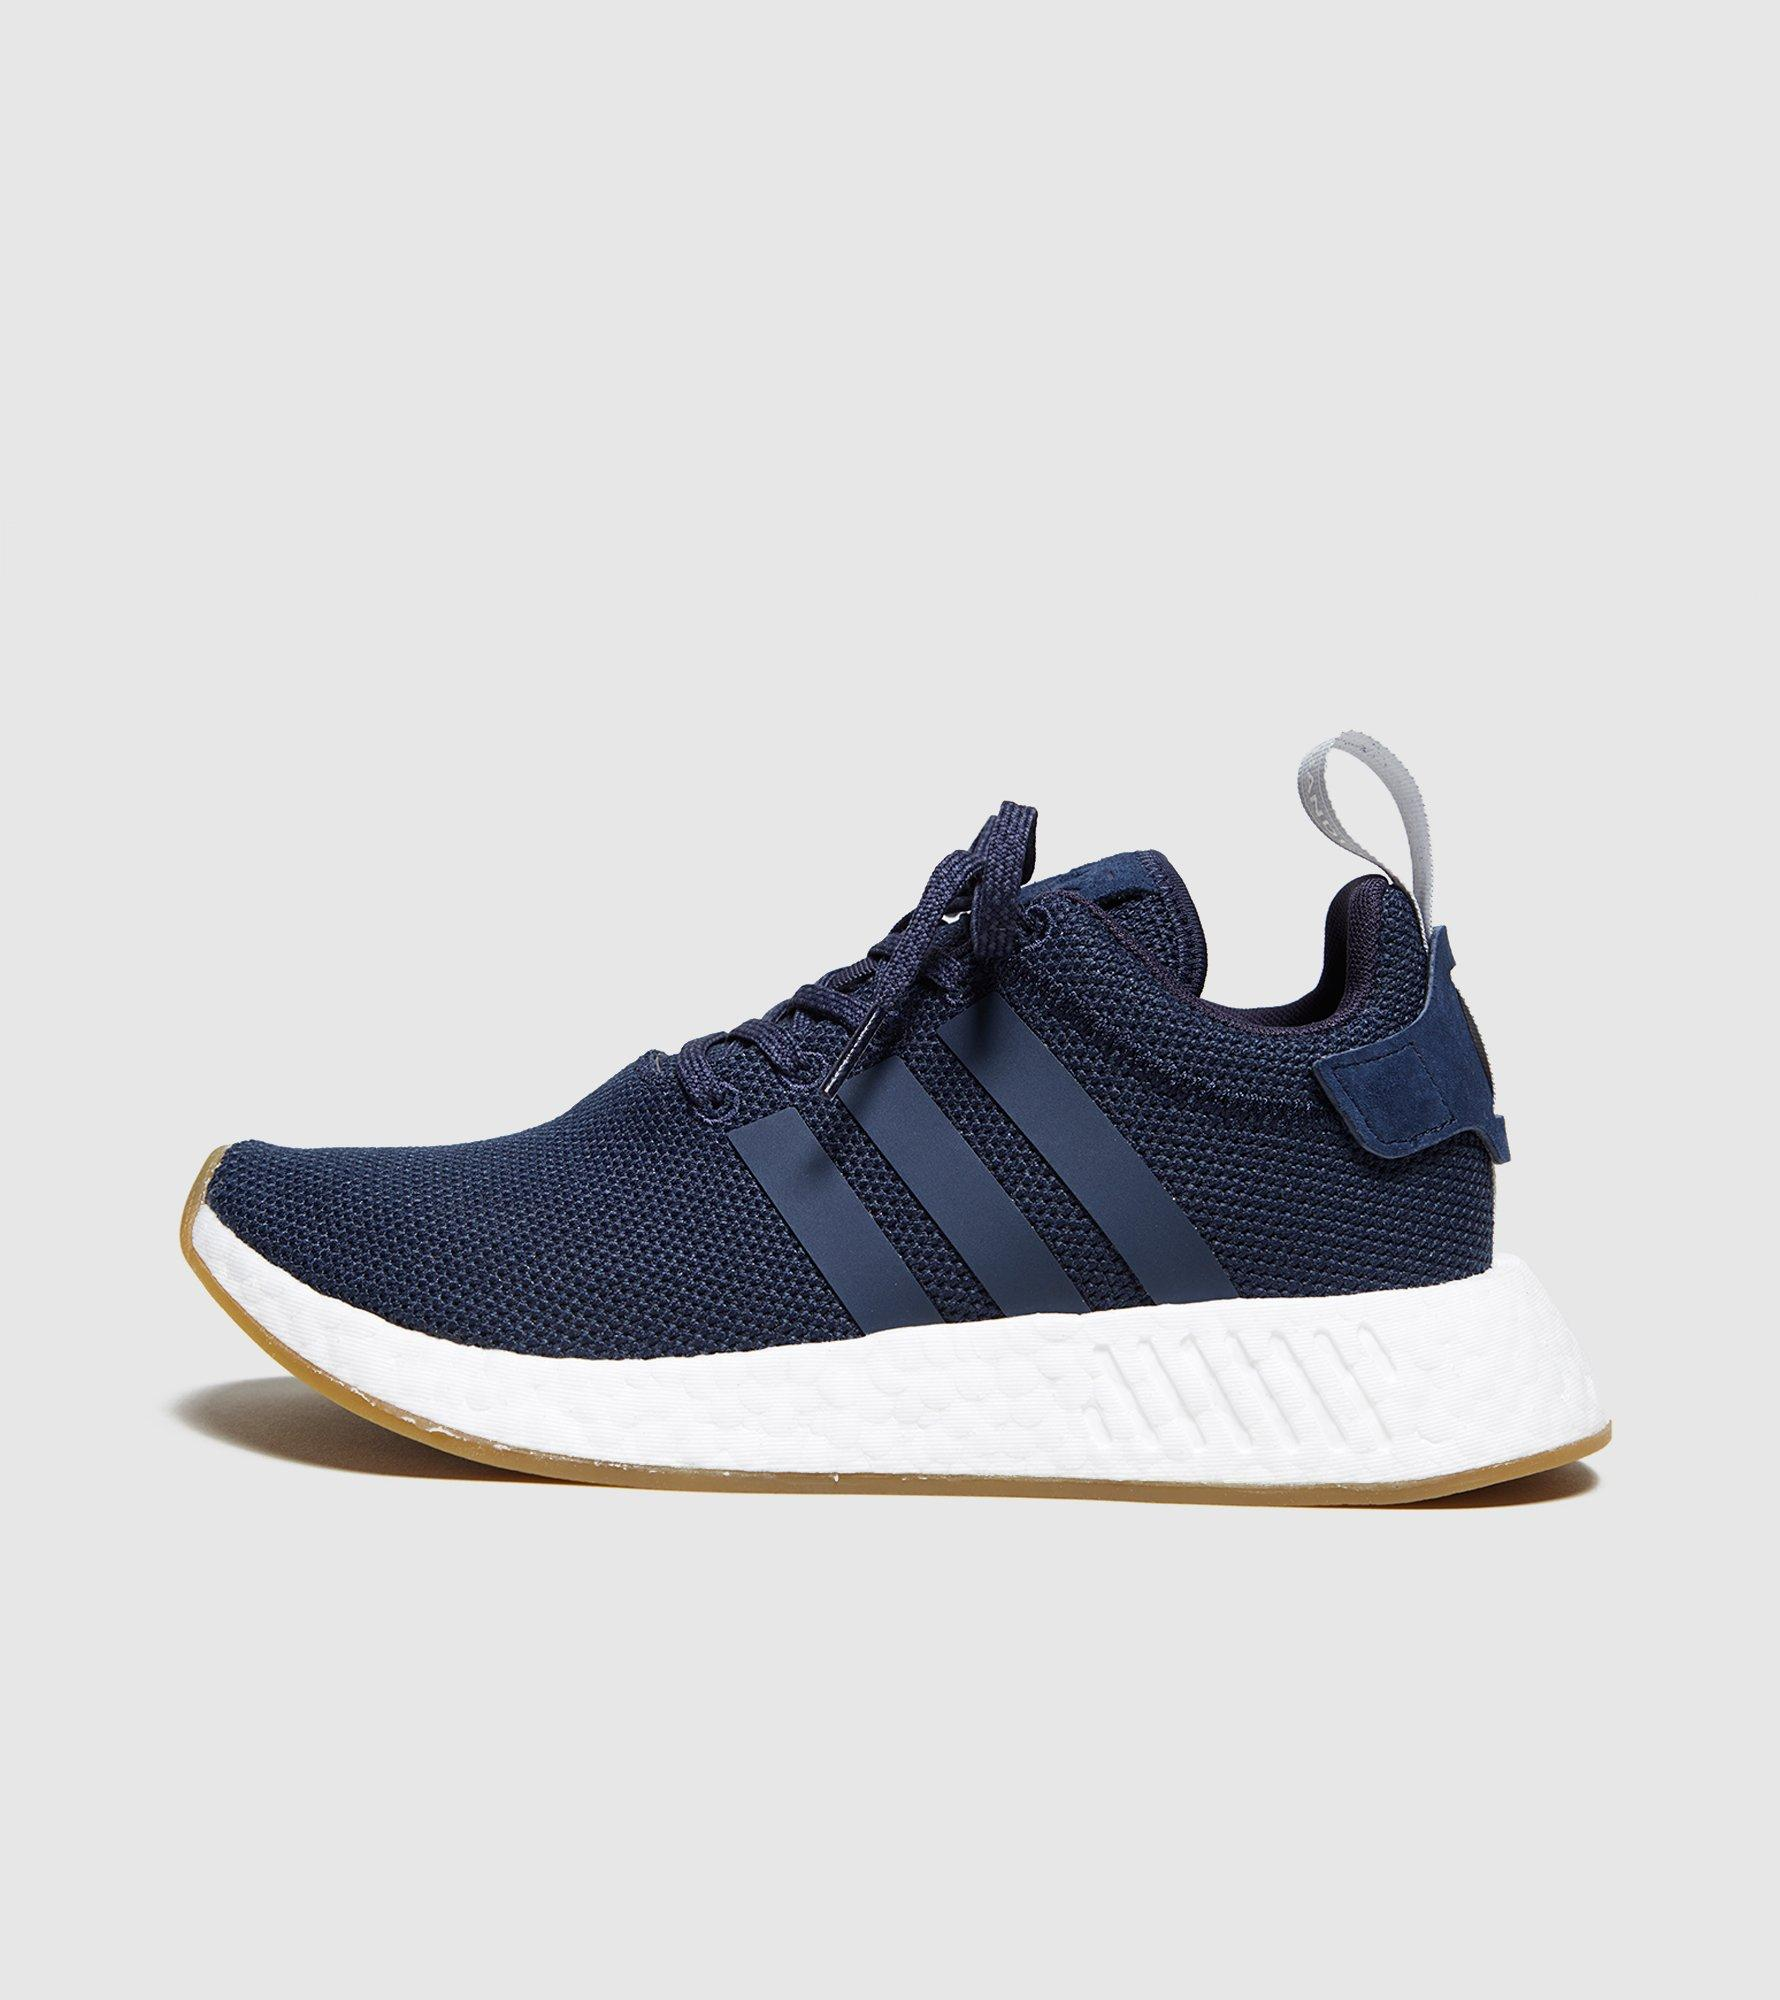 2d9e54734fe2e adidas nmd r2 white womens adidas gazelle 2 blue and red Equipped ...